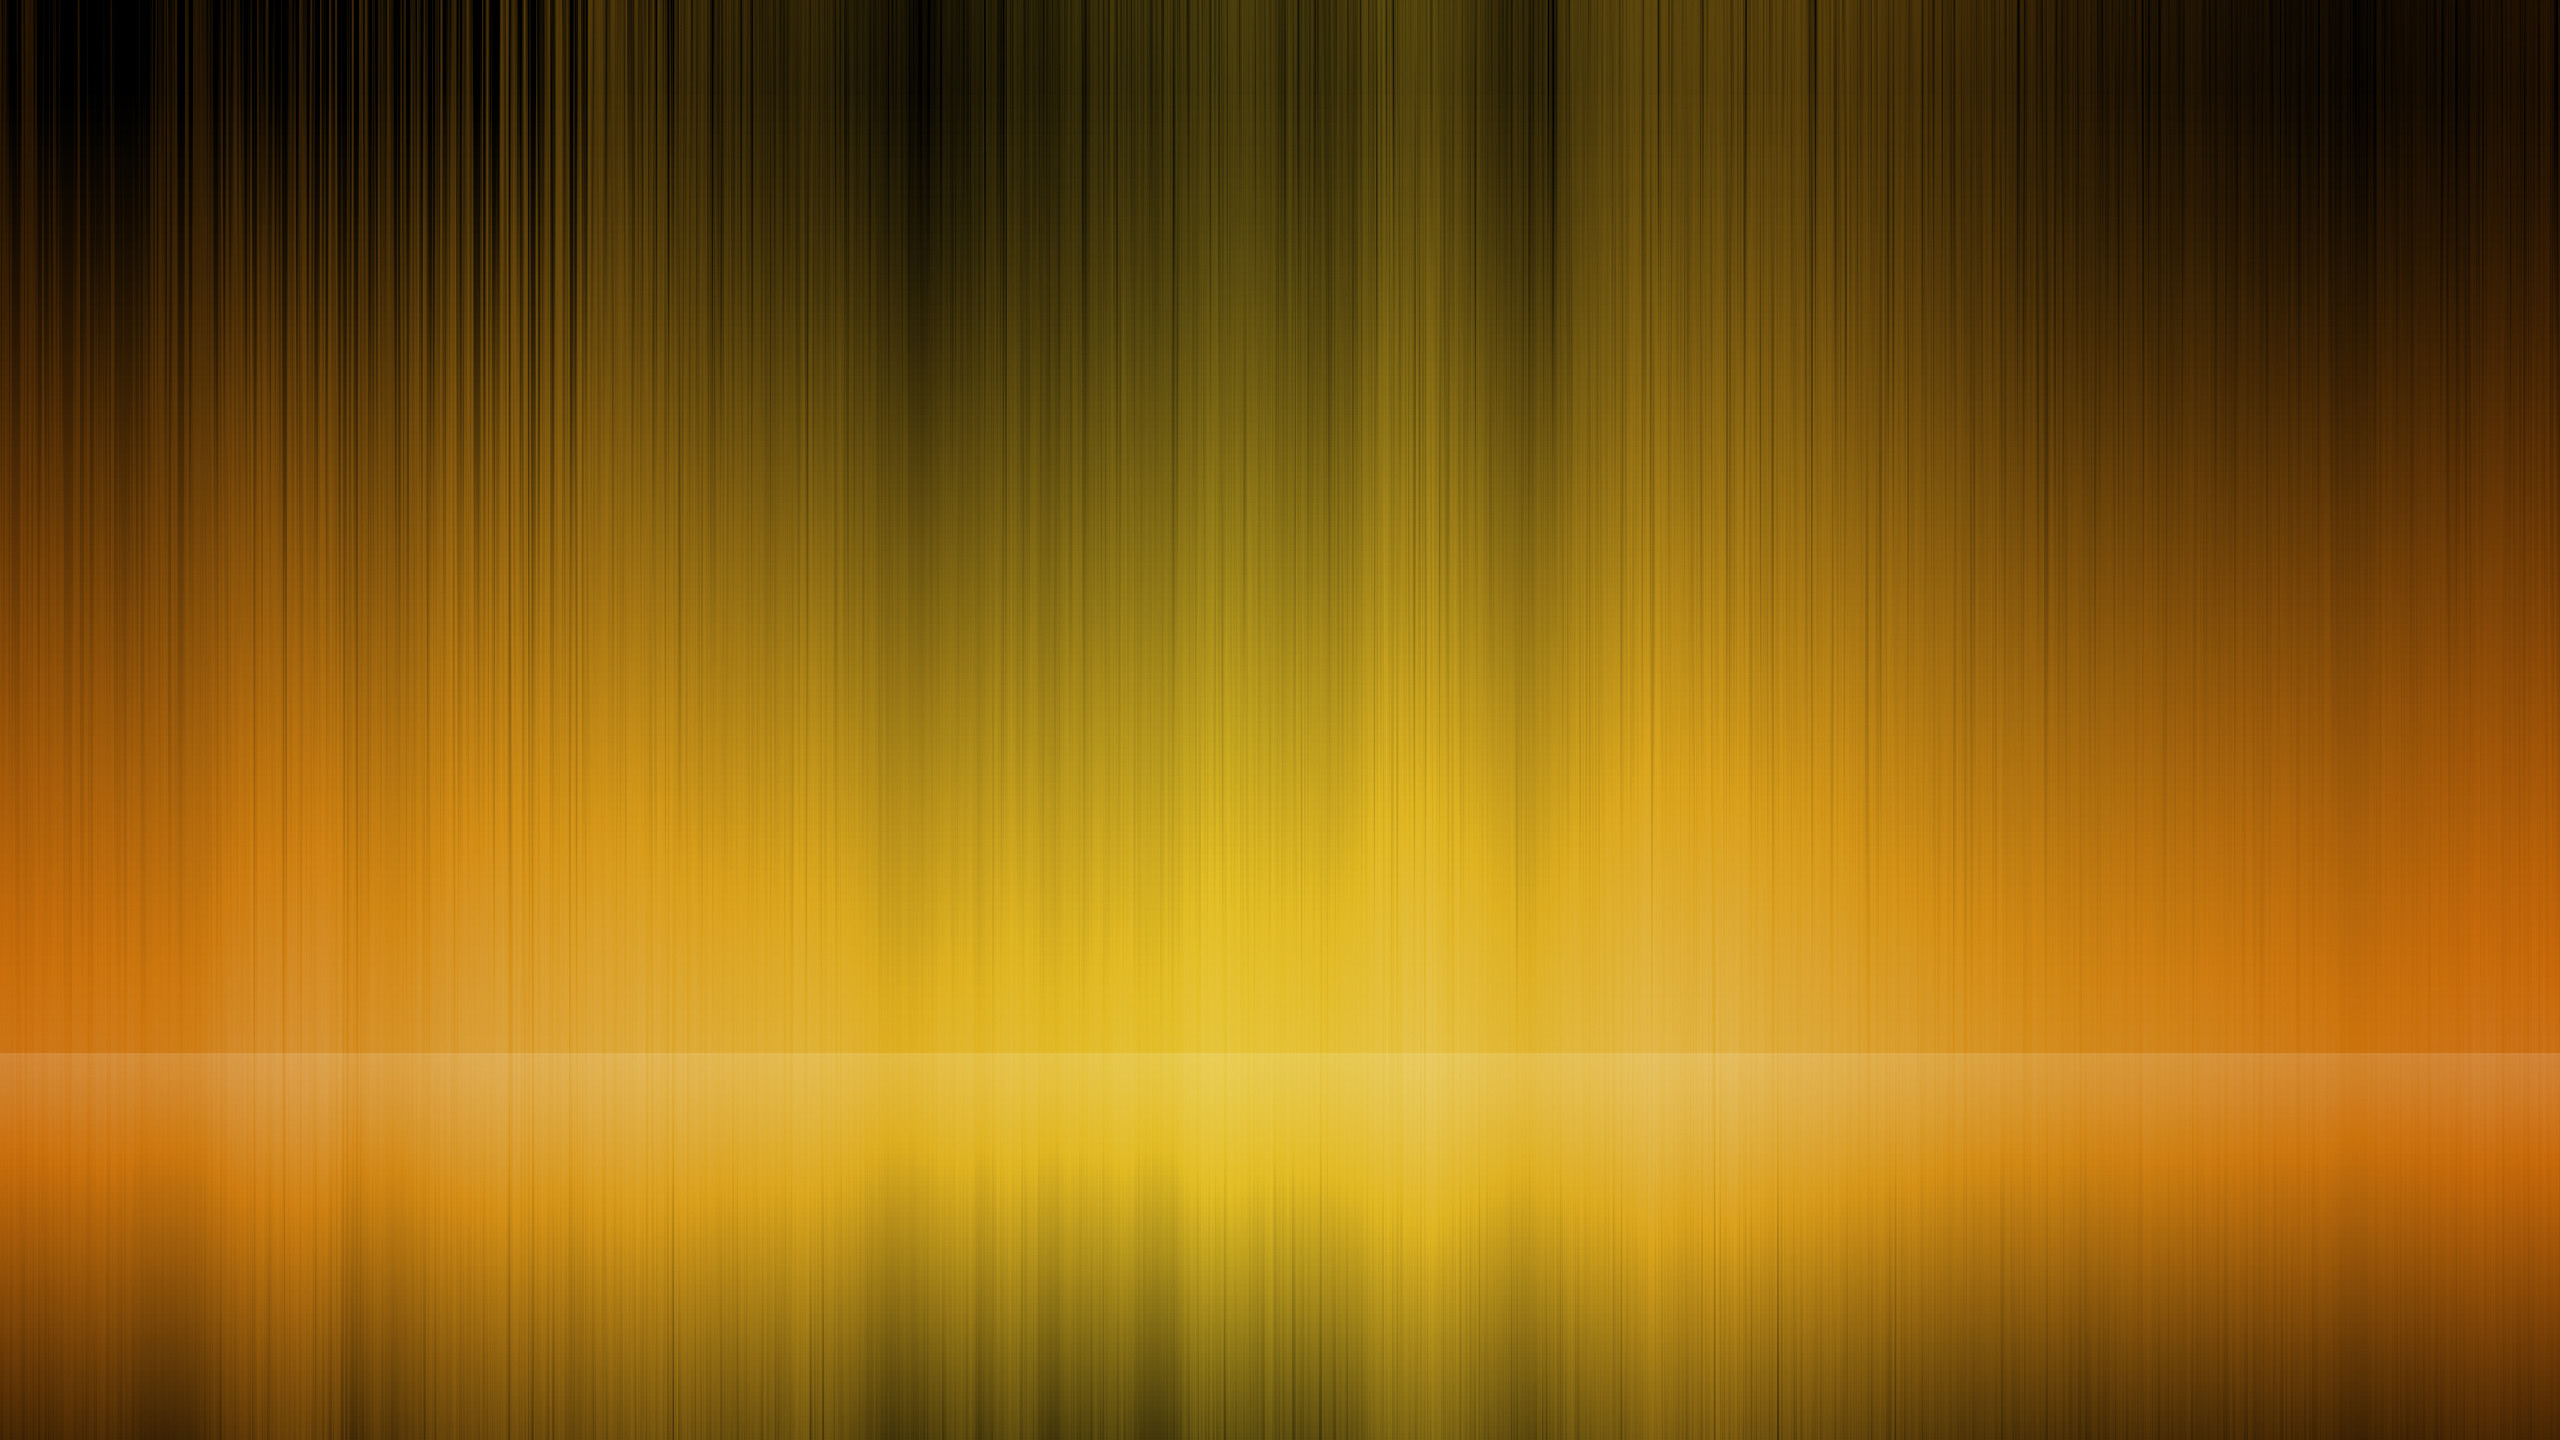 Download these 42 yellow wallpapers in high definition for for 3d brown wallpaper